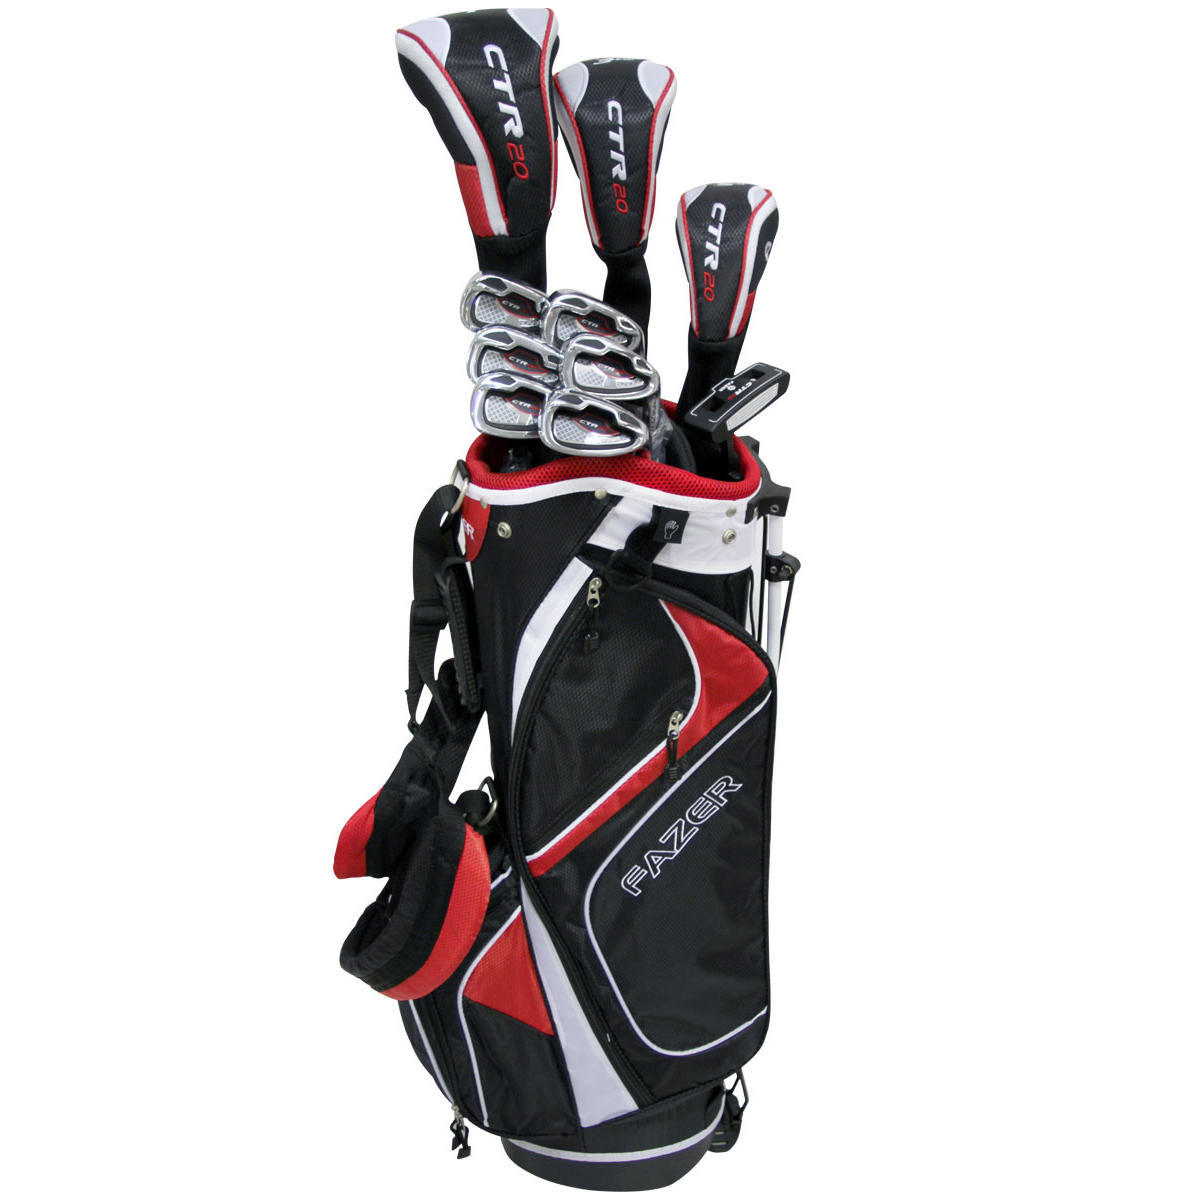 Fazer Golf Package Set